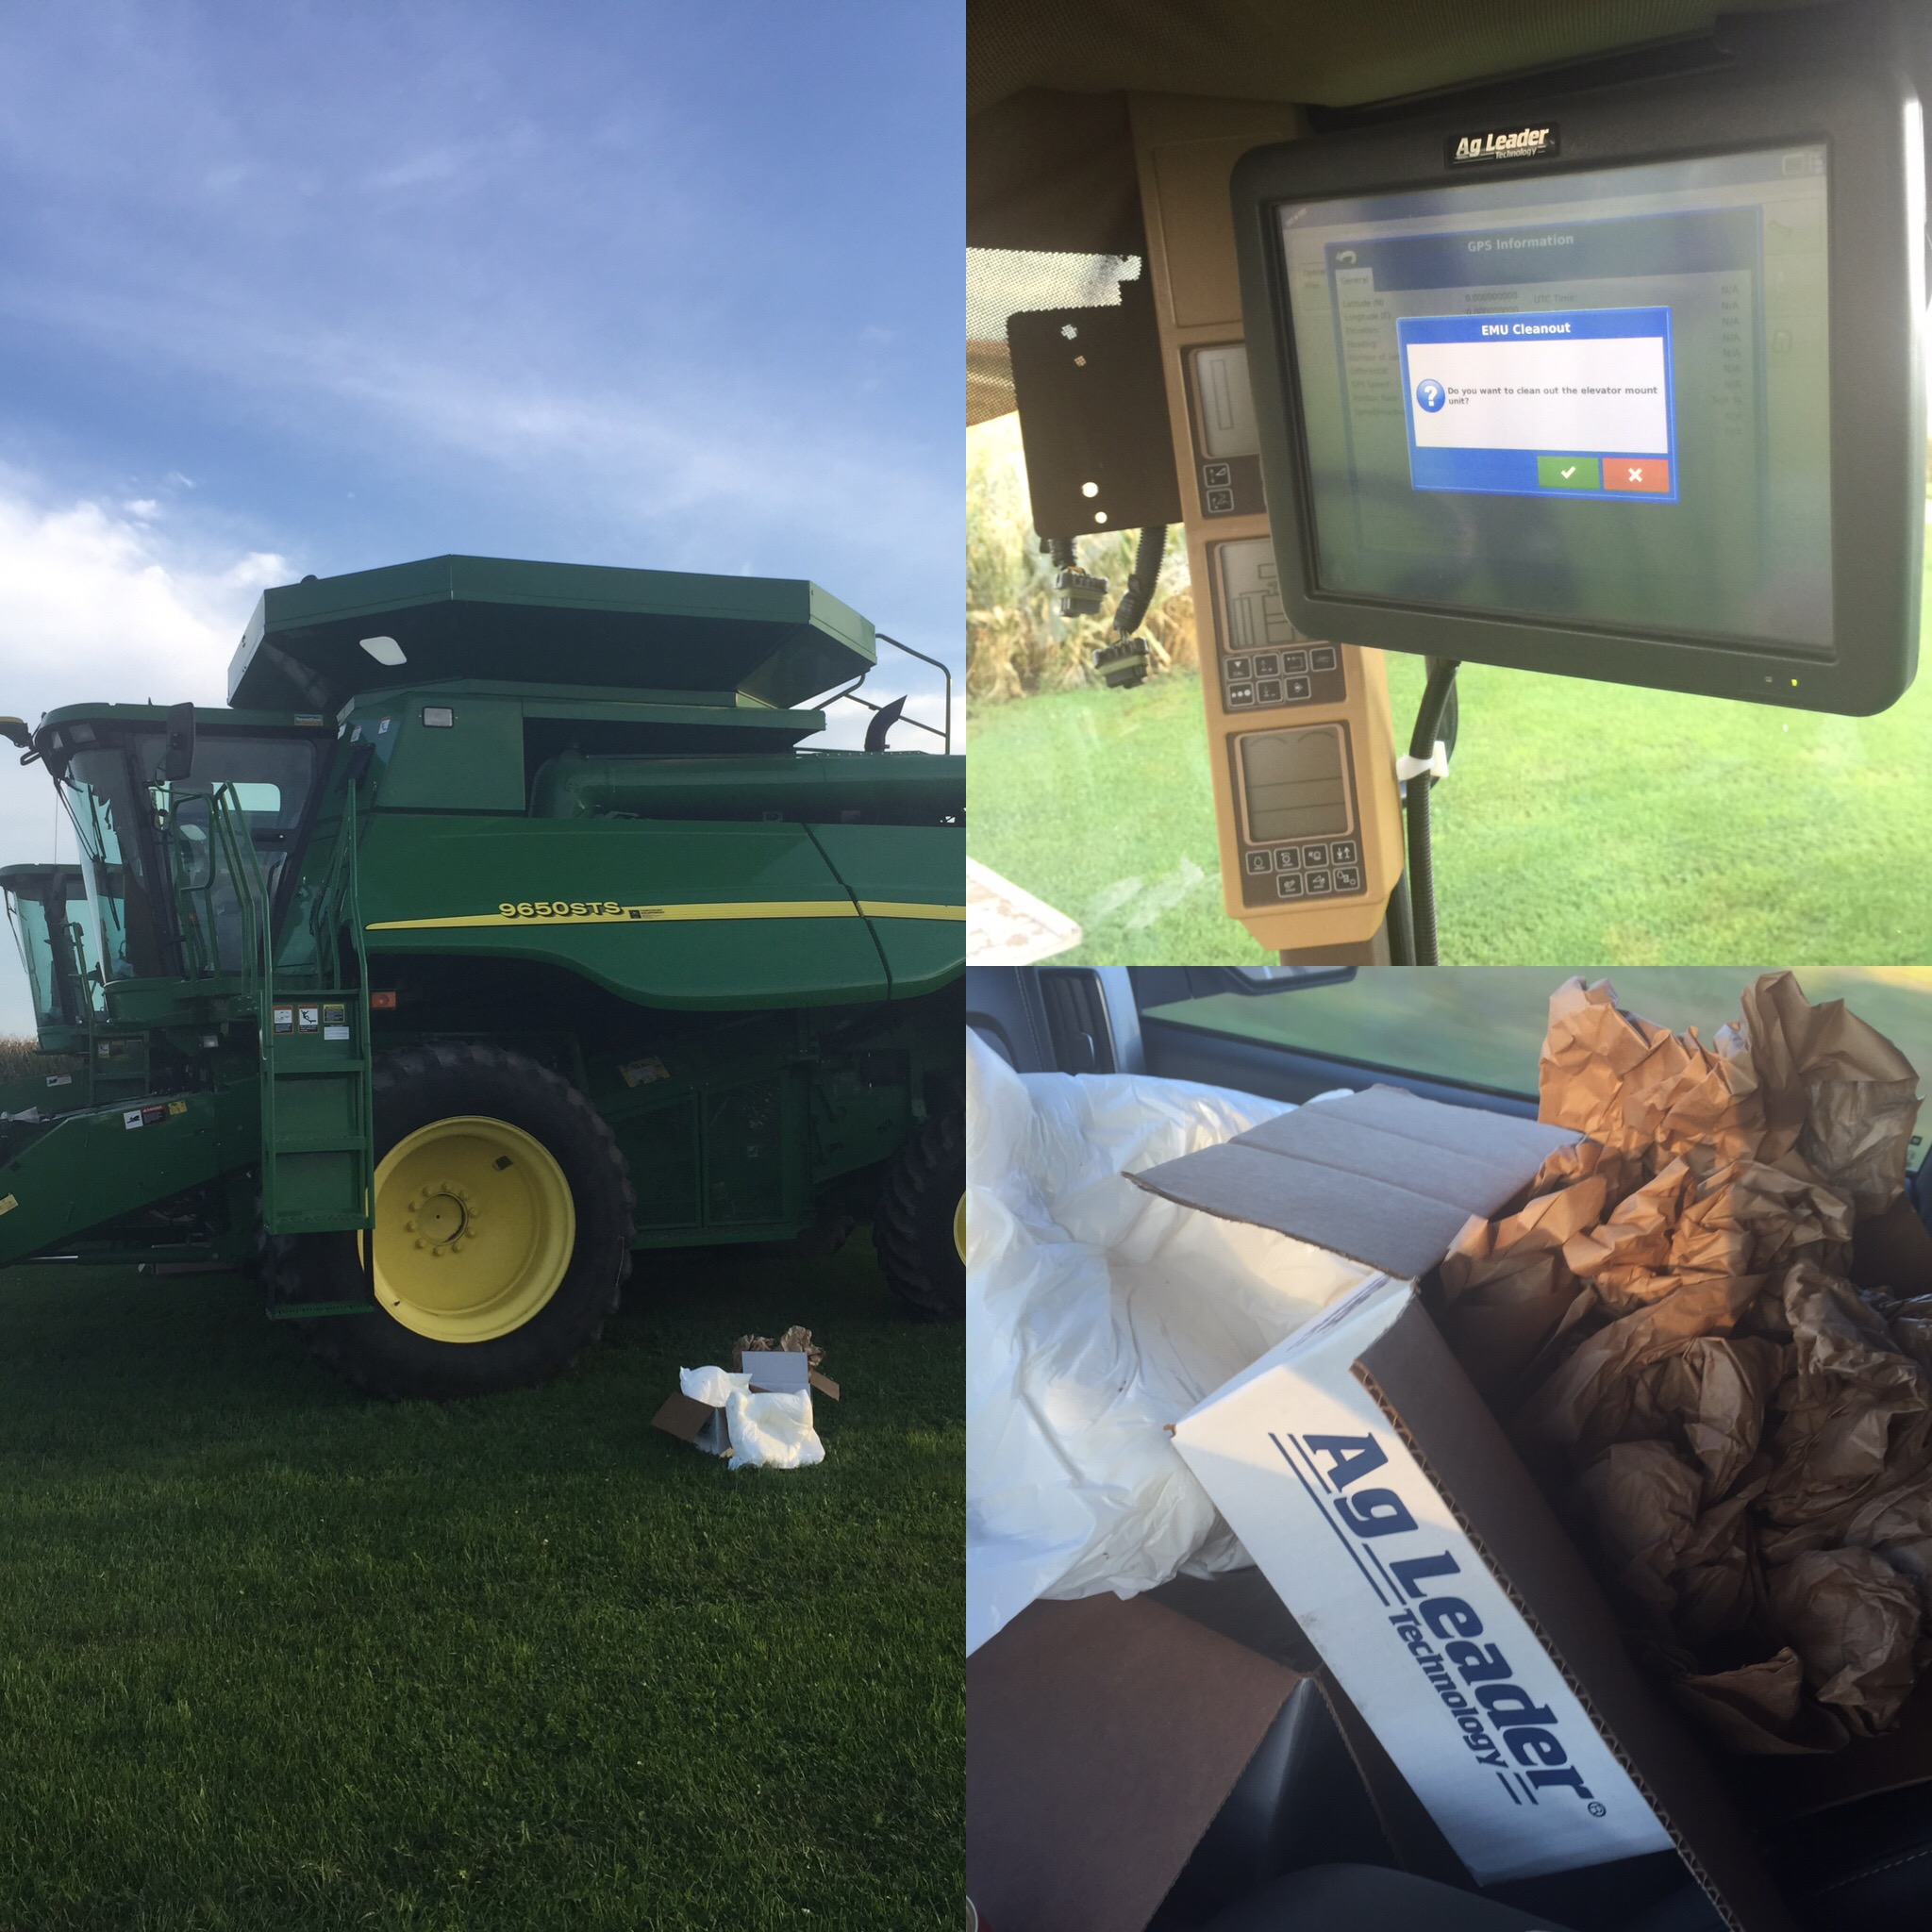 AG Leader's Displays and Auto Steering equipment will plug and play with any variety of machine.